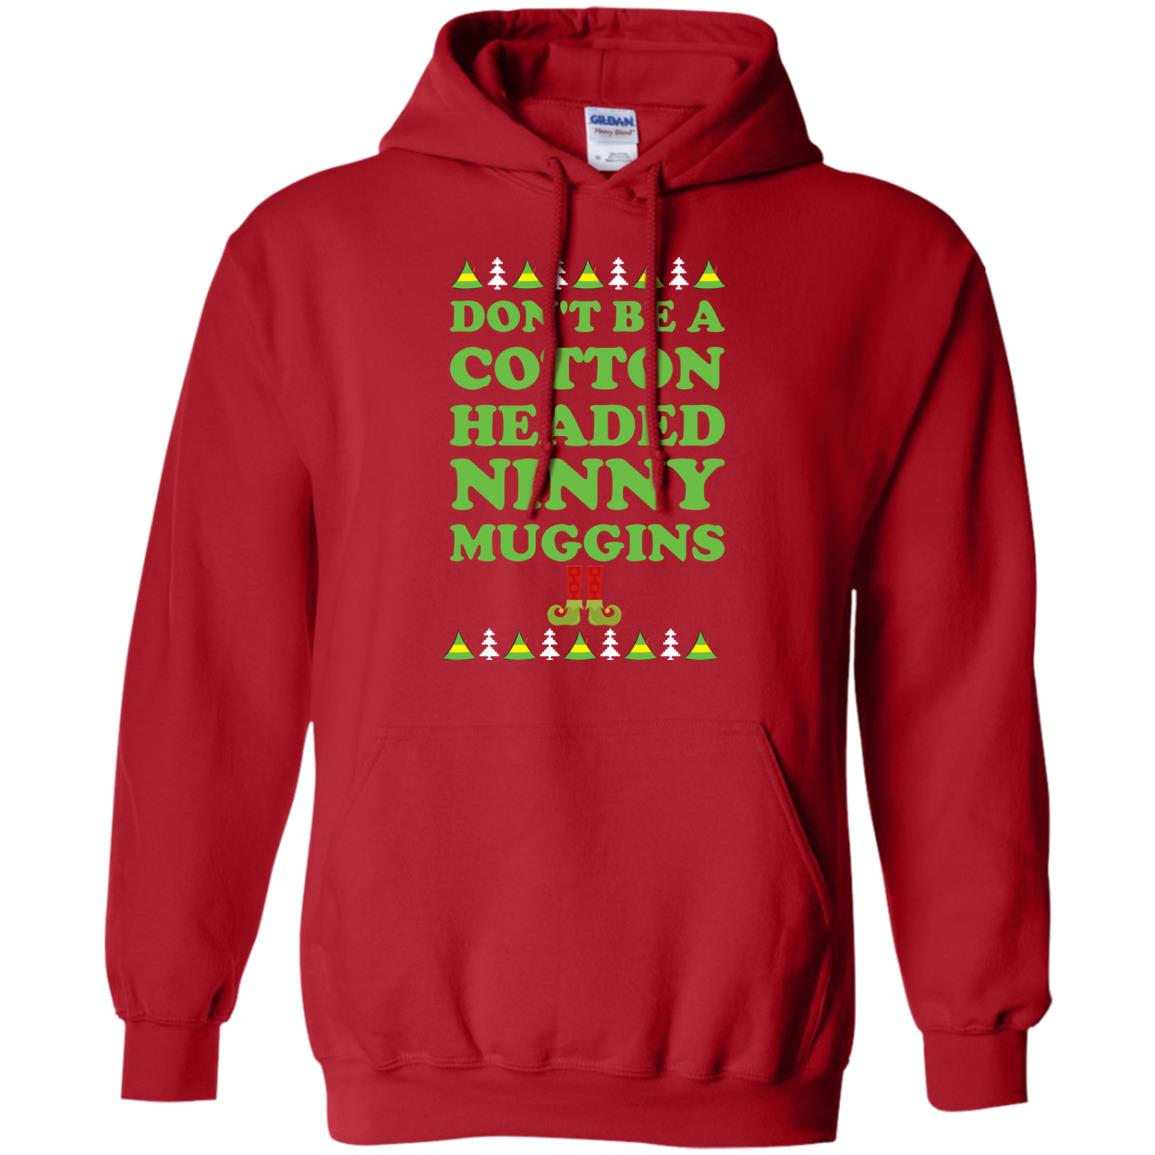 image 2798 - Elf Don't Be a Cotton Headed Ninny Muggins Christmas Sweater, Hoodie